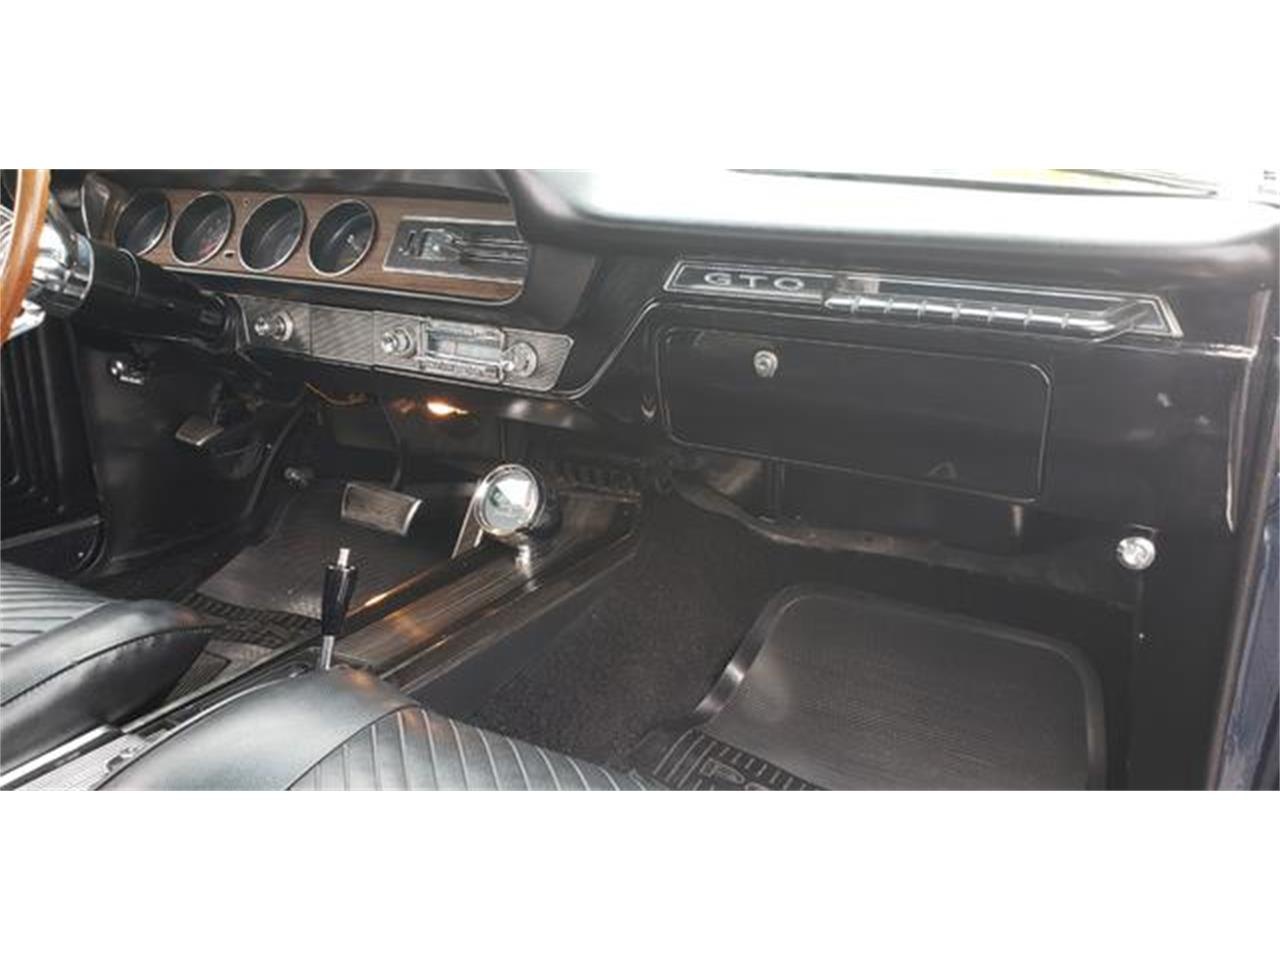 Large Picture of '65 GTO located in Maryland - $32,500.00 Offered by Universal Auto Sales - QFCL